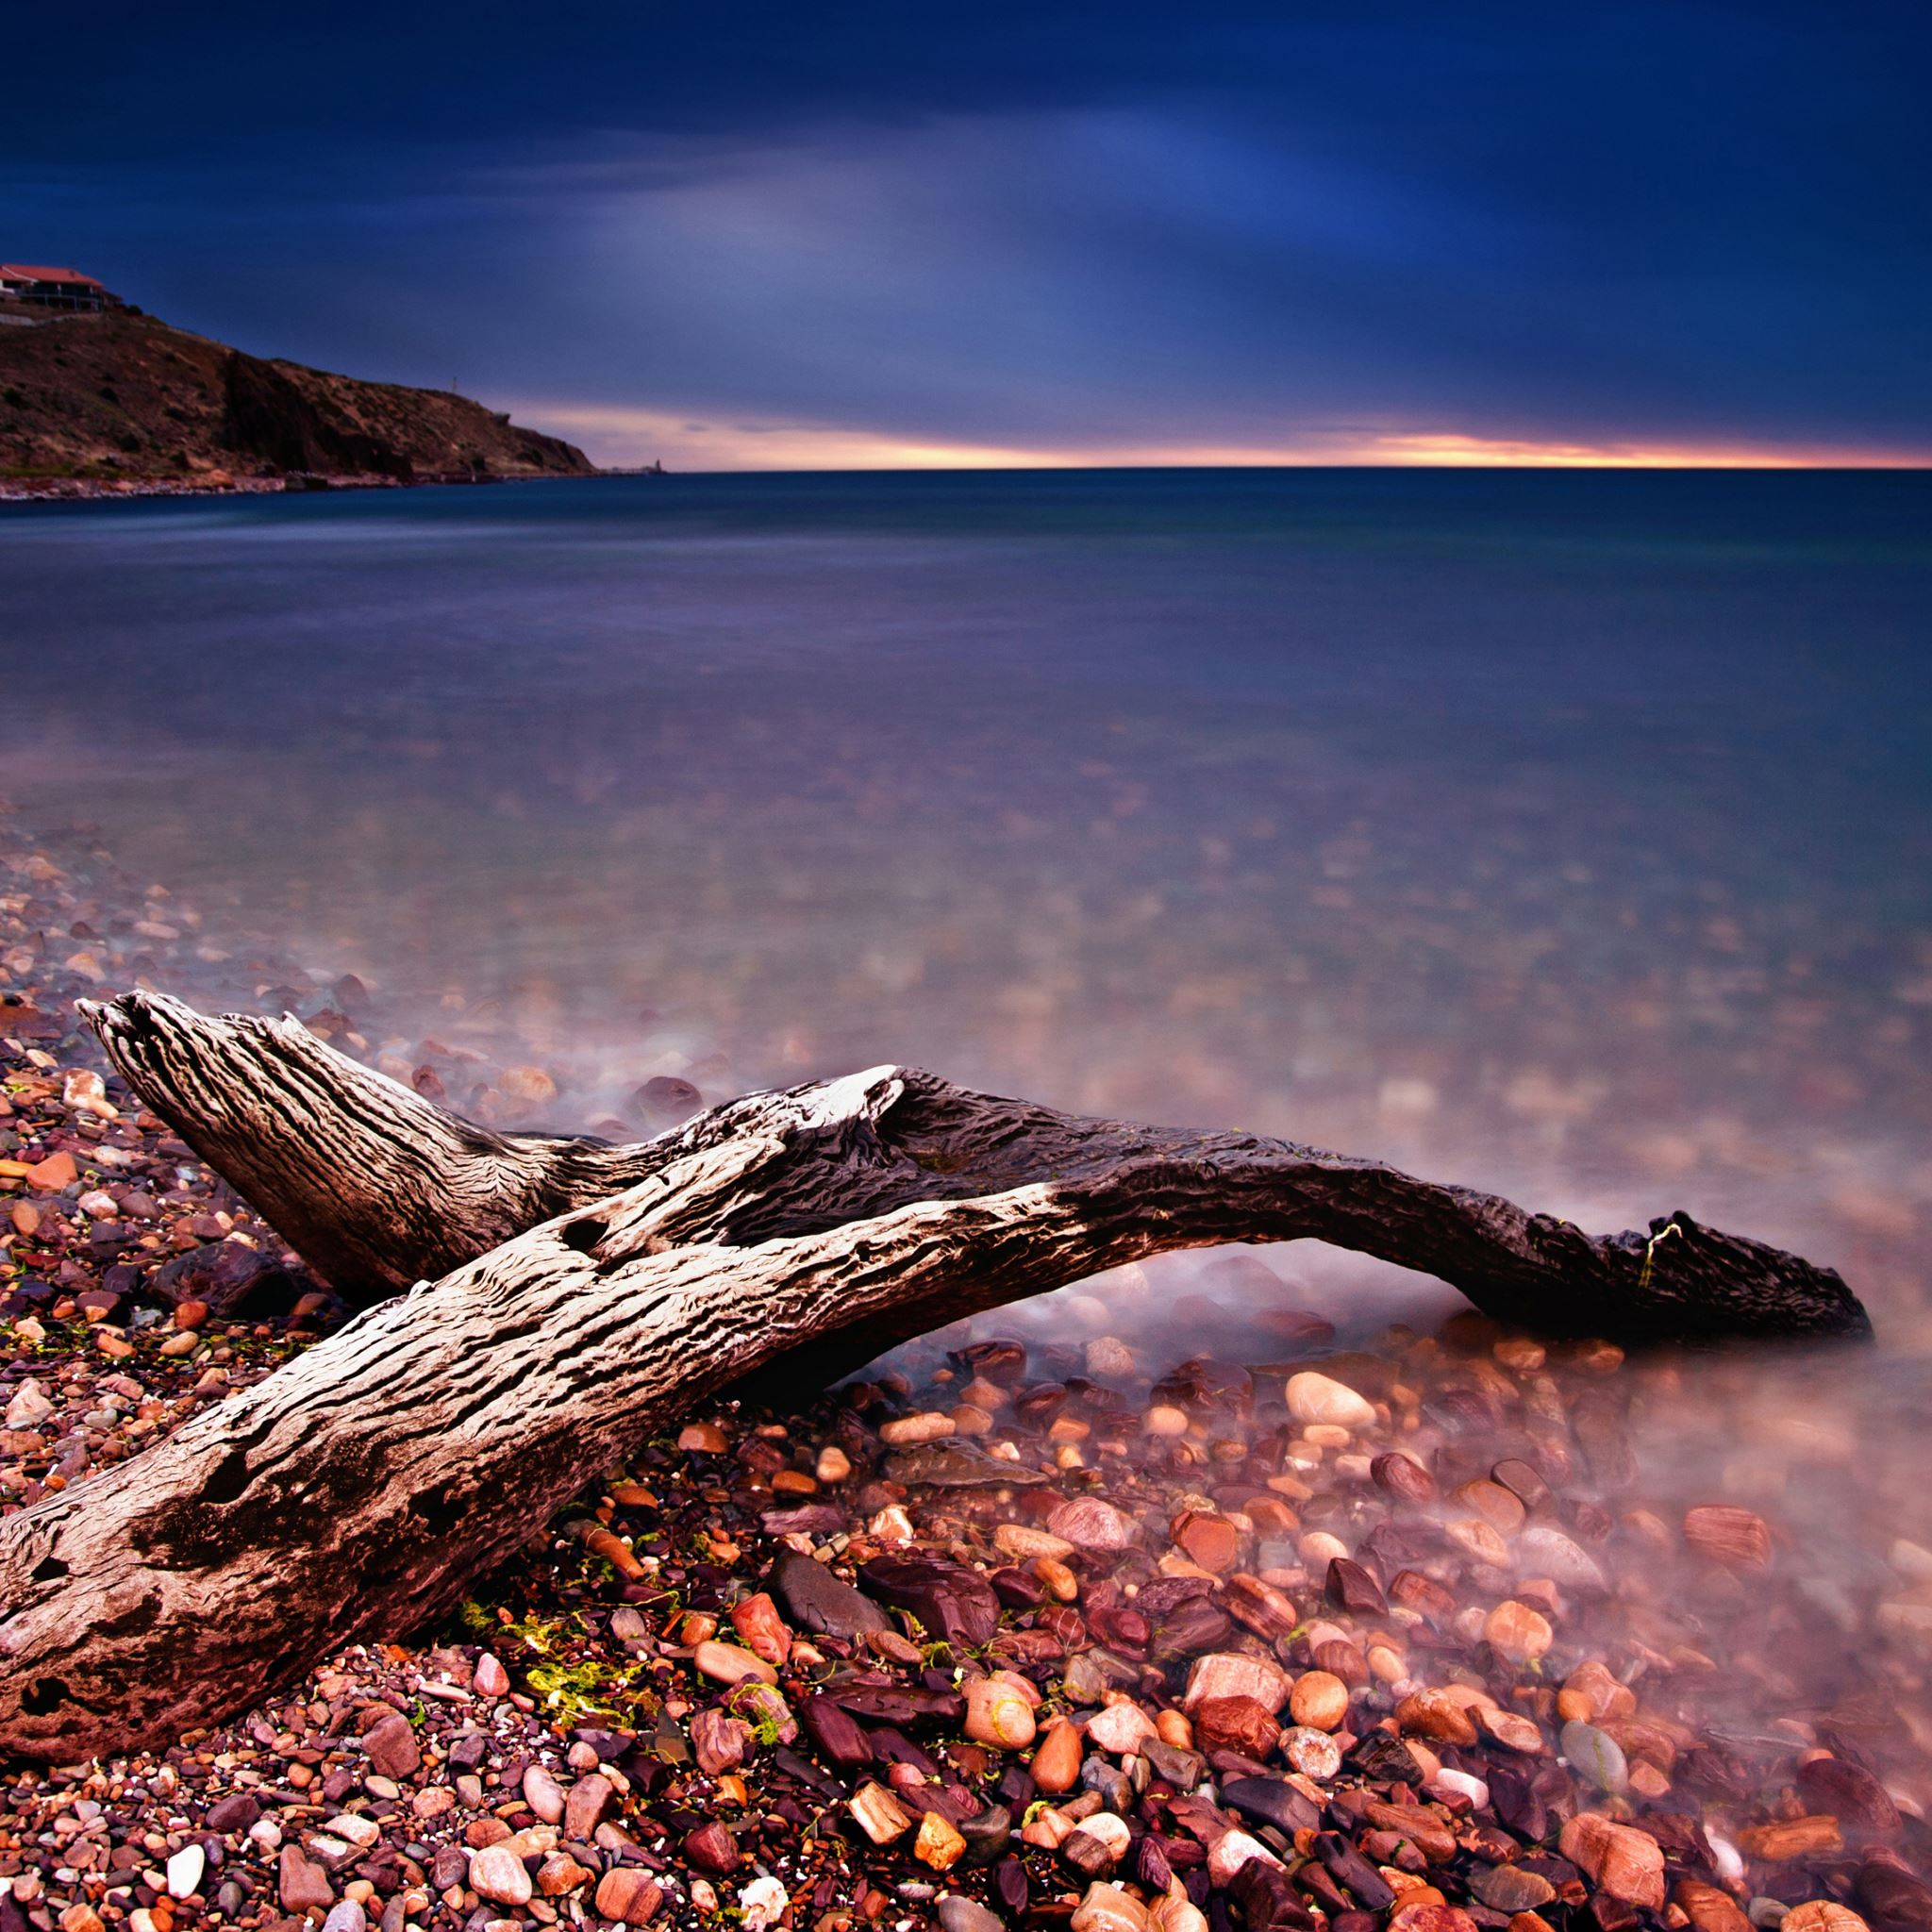 Driftwood iPad Air wallpaper